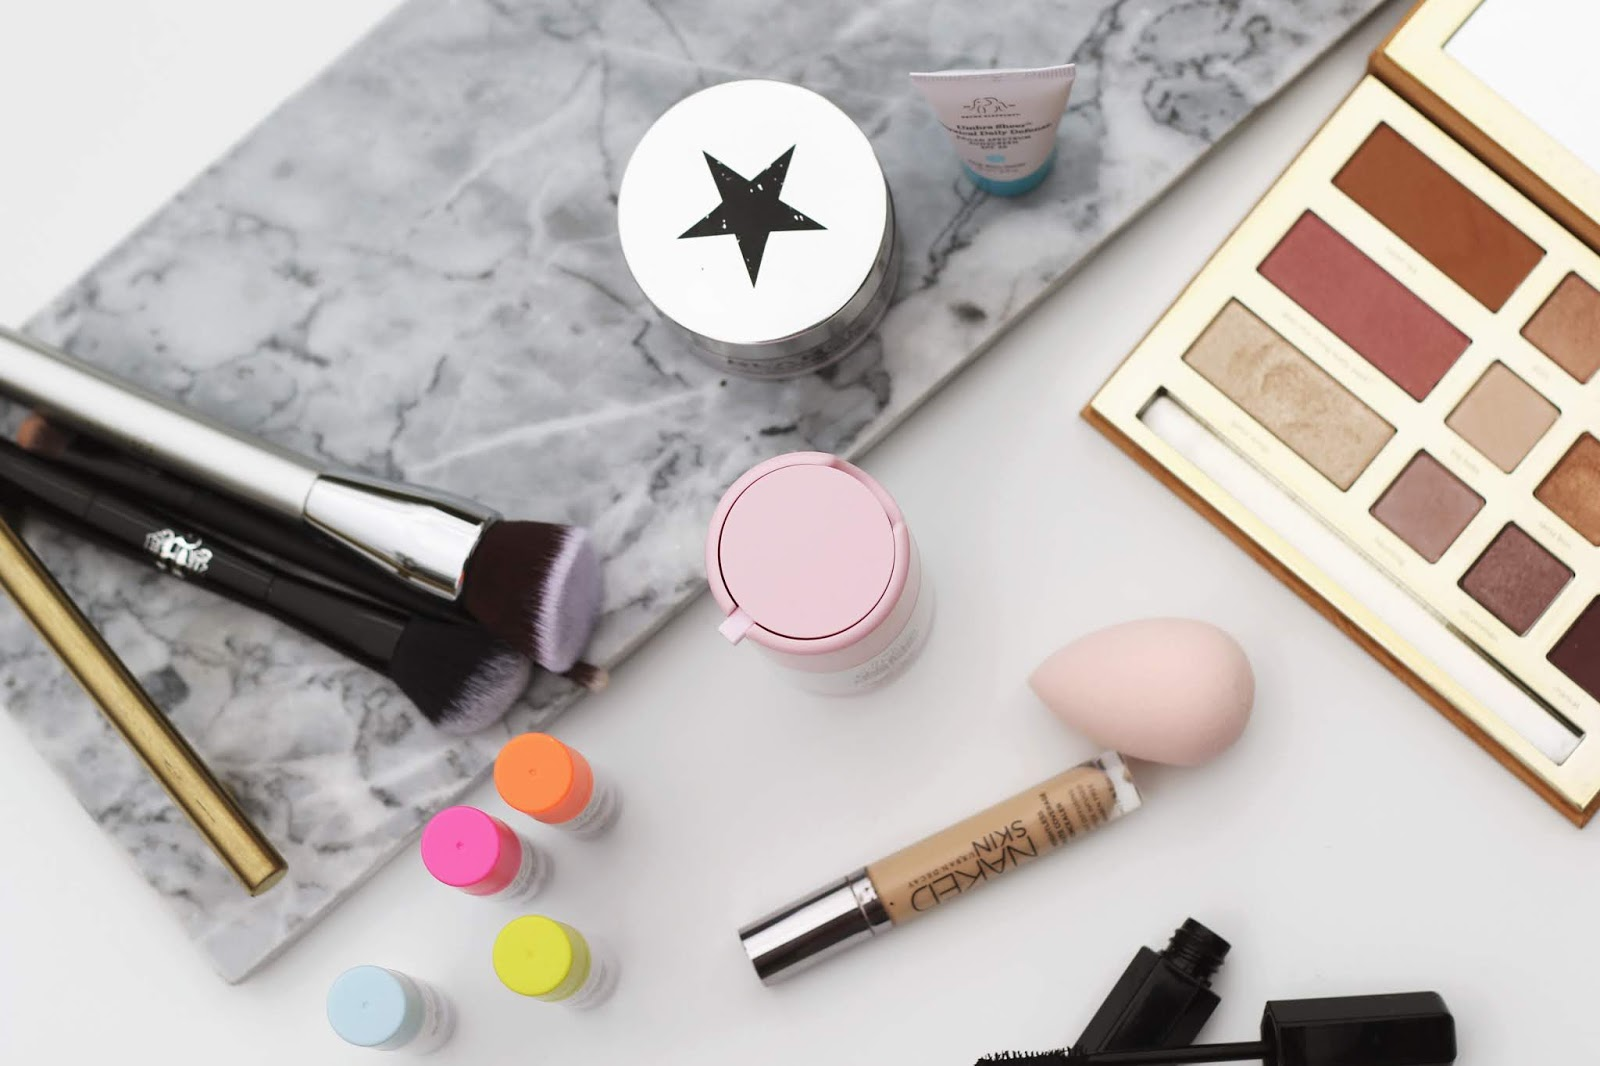 Makeup products, beauty flatlay, Drunk Elephant, sephora sale picks, beauty blogger, college blogger, lifestyle blogger